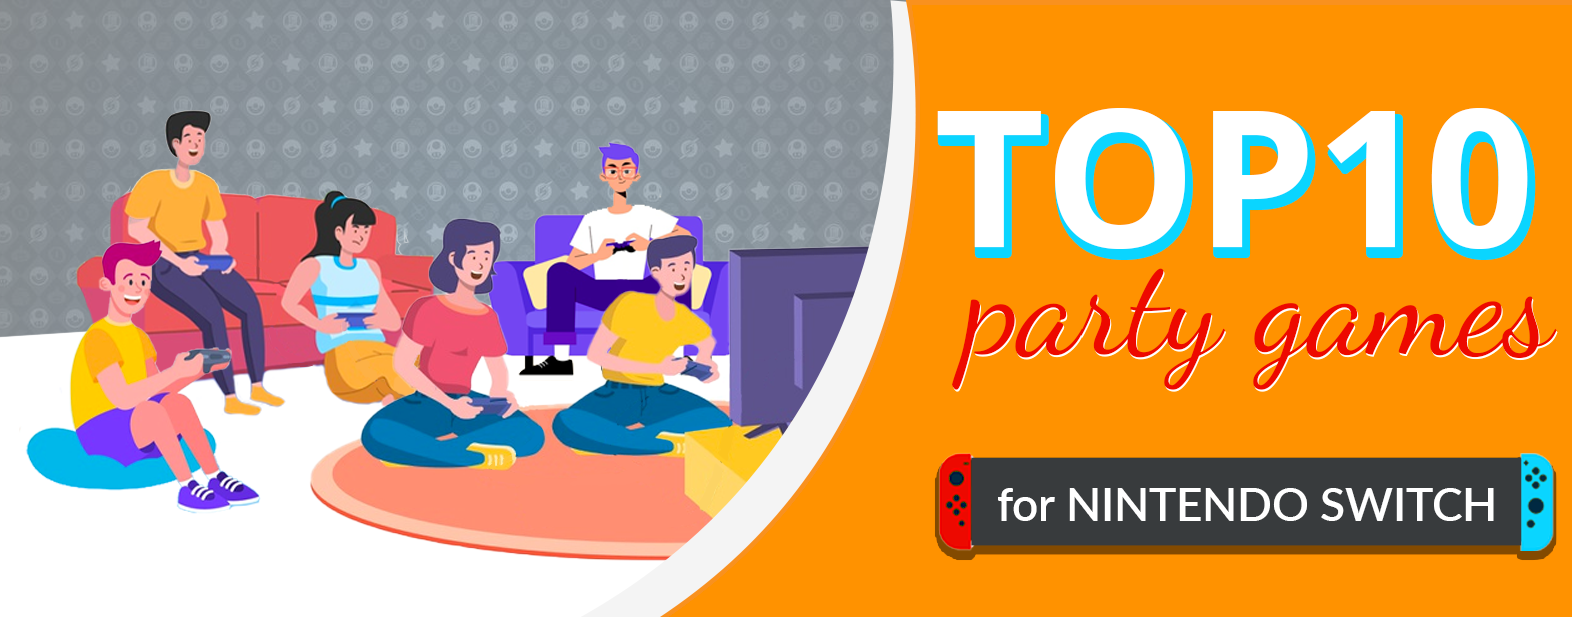 Top 10 Party Games for Nintendo Switch